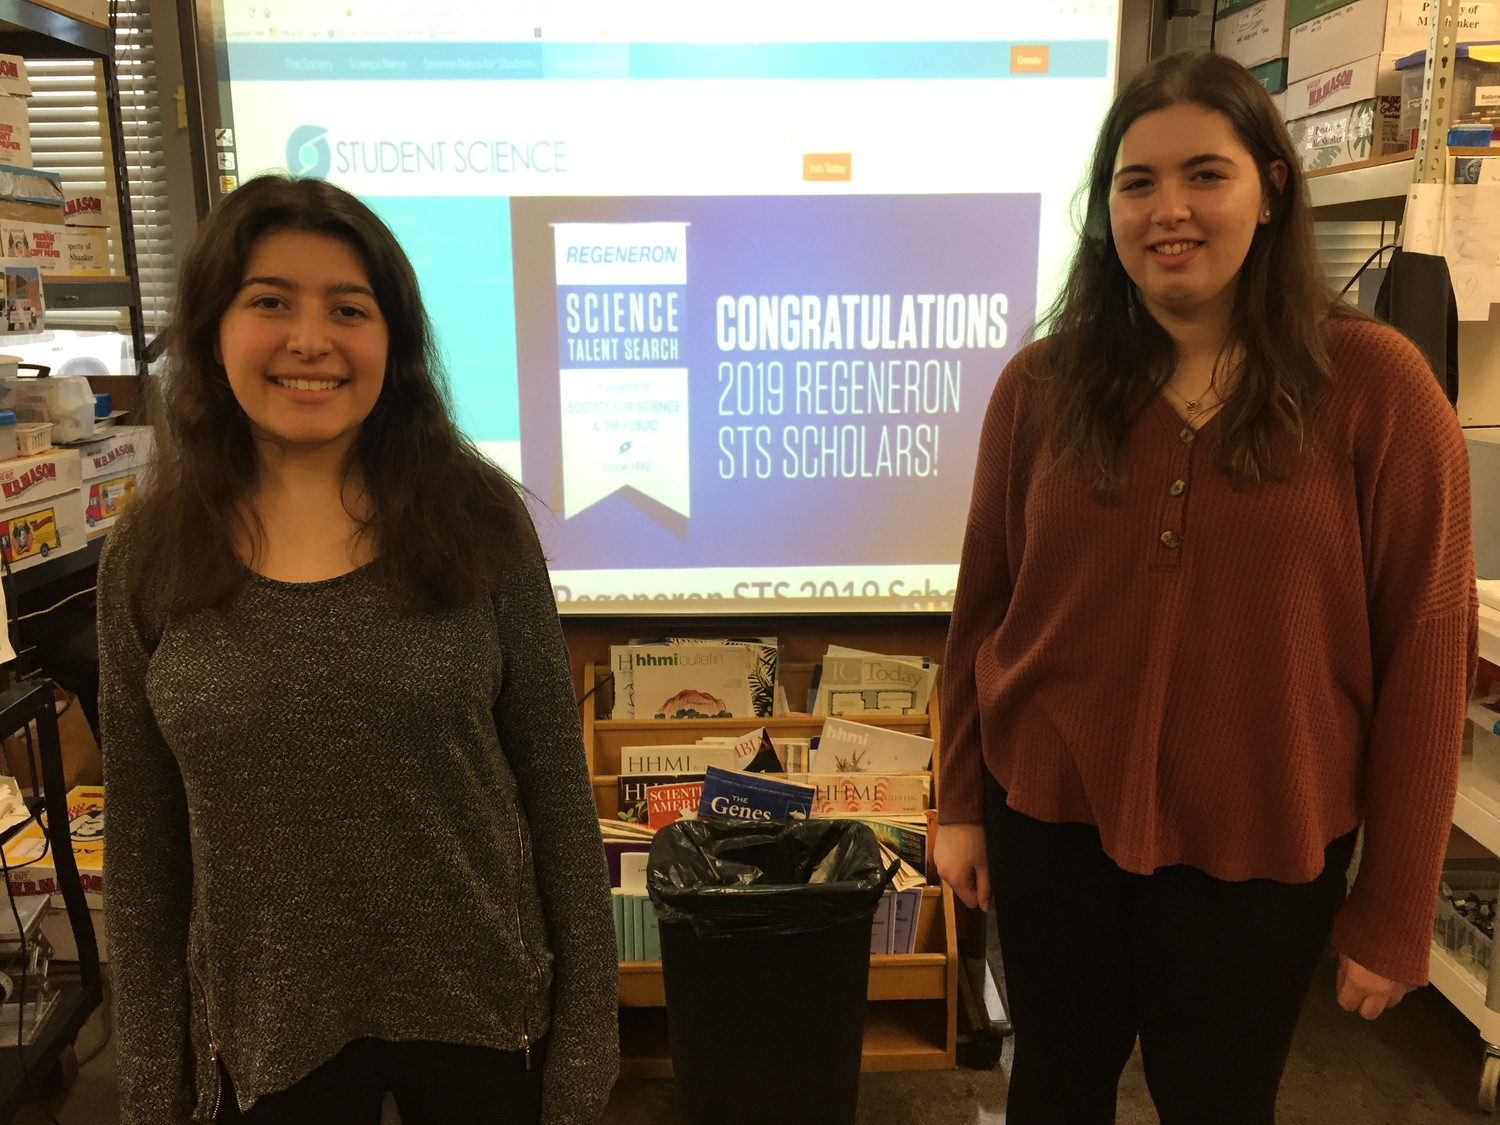 Lynbrook High School seniors Kaylie Hausknecht, left, and Juliana Condoleo were among 300 semifinalists in the 2019 Regeneron Science Talent Search.